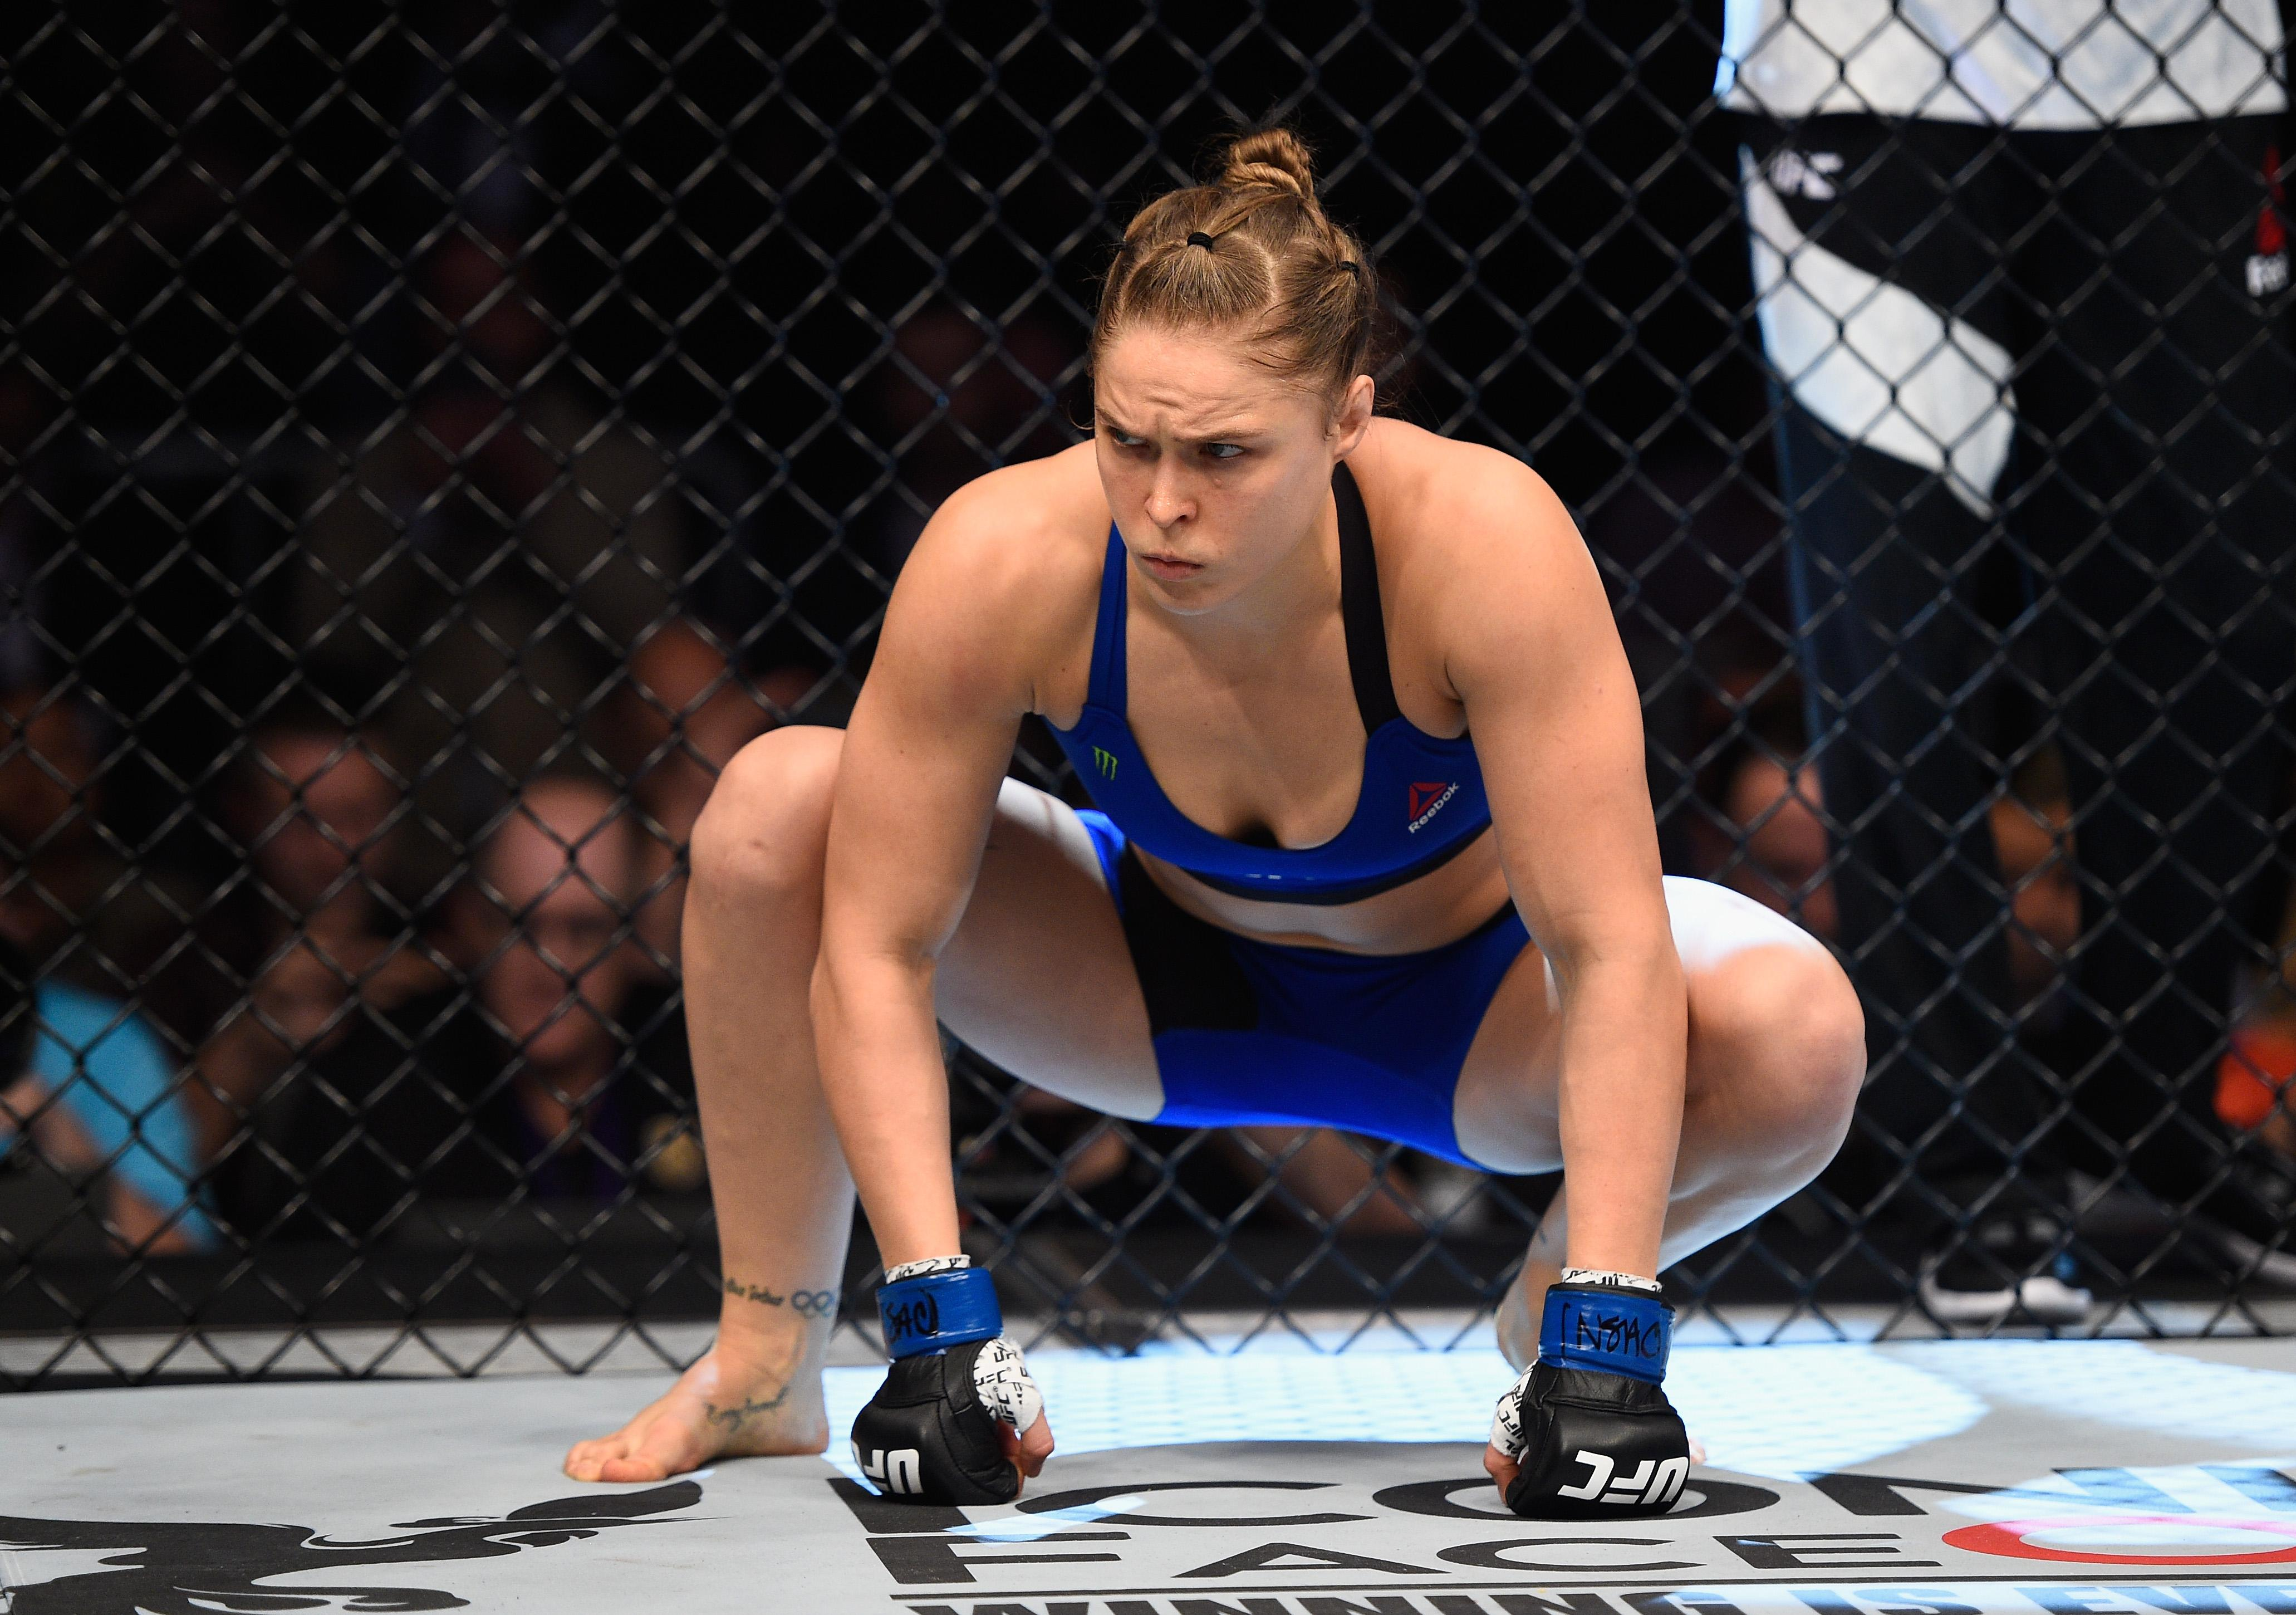 Big names such as Ronda Rousey's departure from UFC mean BT Sport will not enter a bidding war for the rights